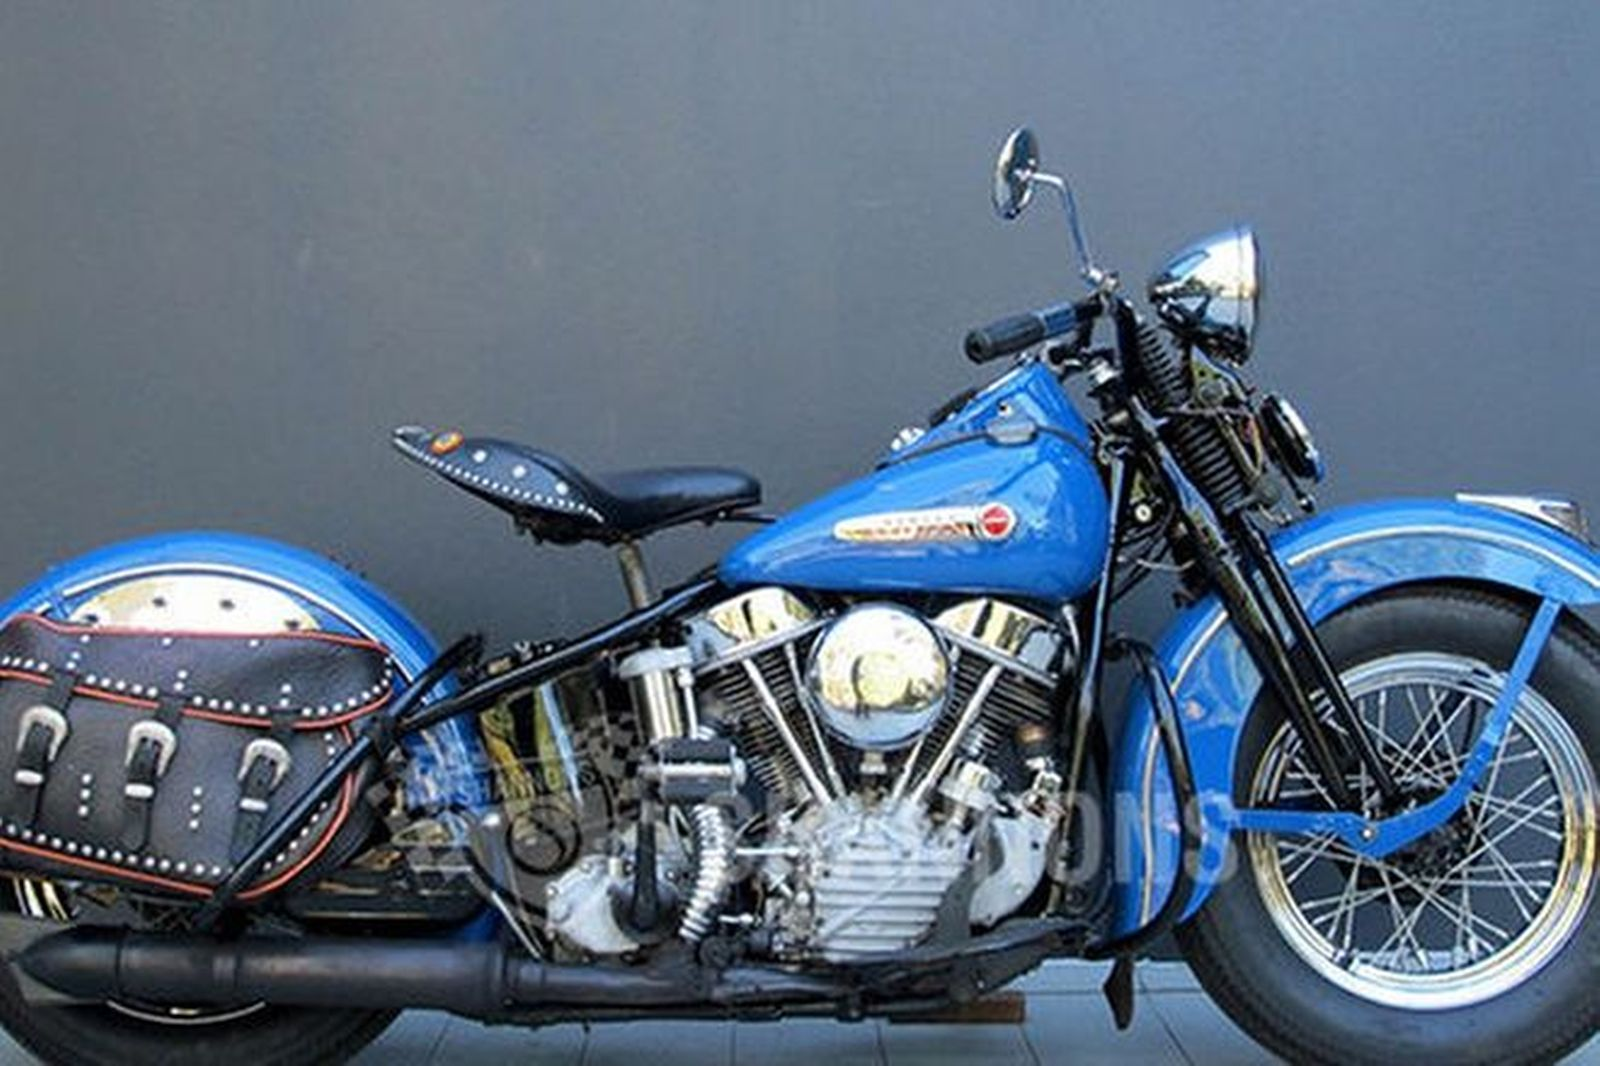 sold  harley-davidson fl panhead 1200cc motorcycle auctions - lot am